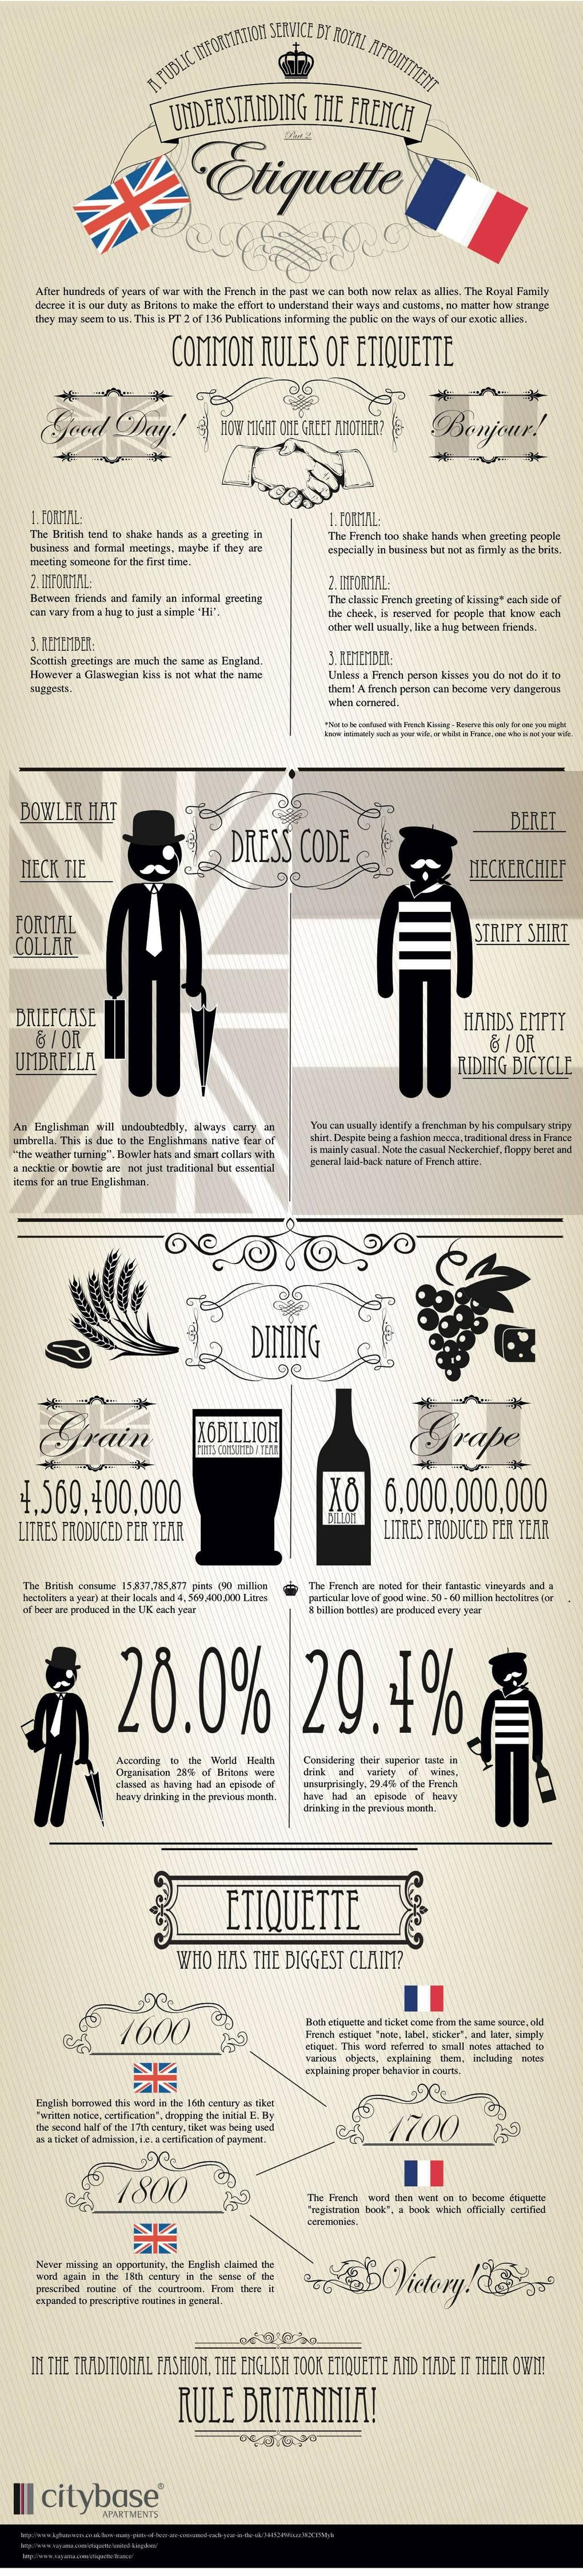 Understanding The French Etiquette Infographic Pinterest